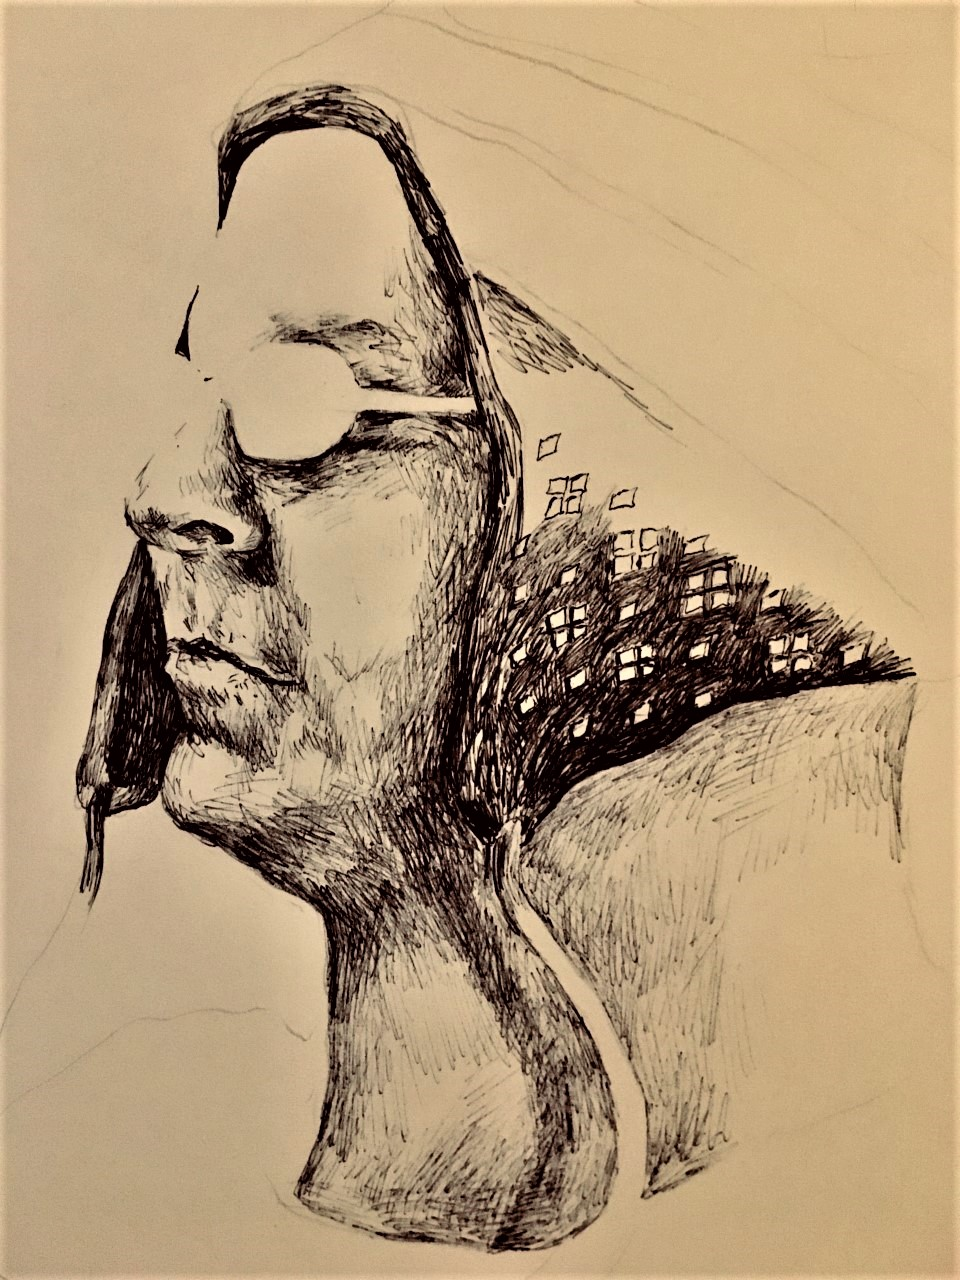 Pen on Paper, 20 x 30 cm, 2019